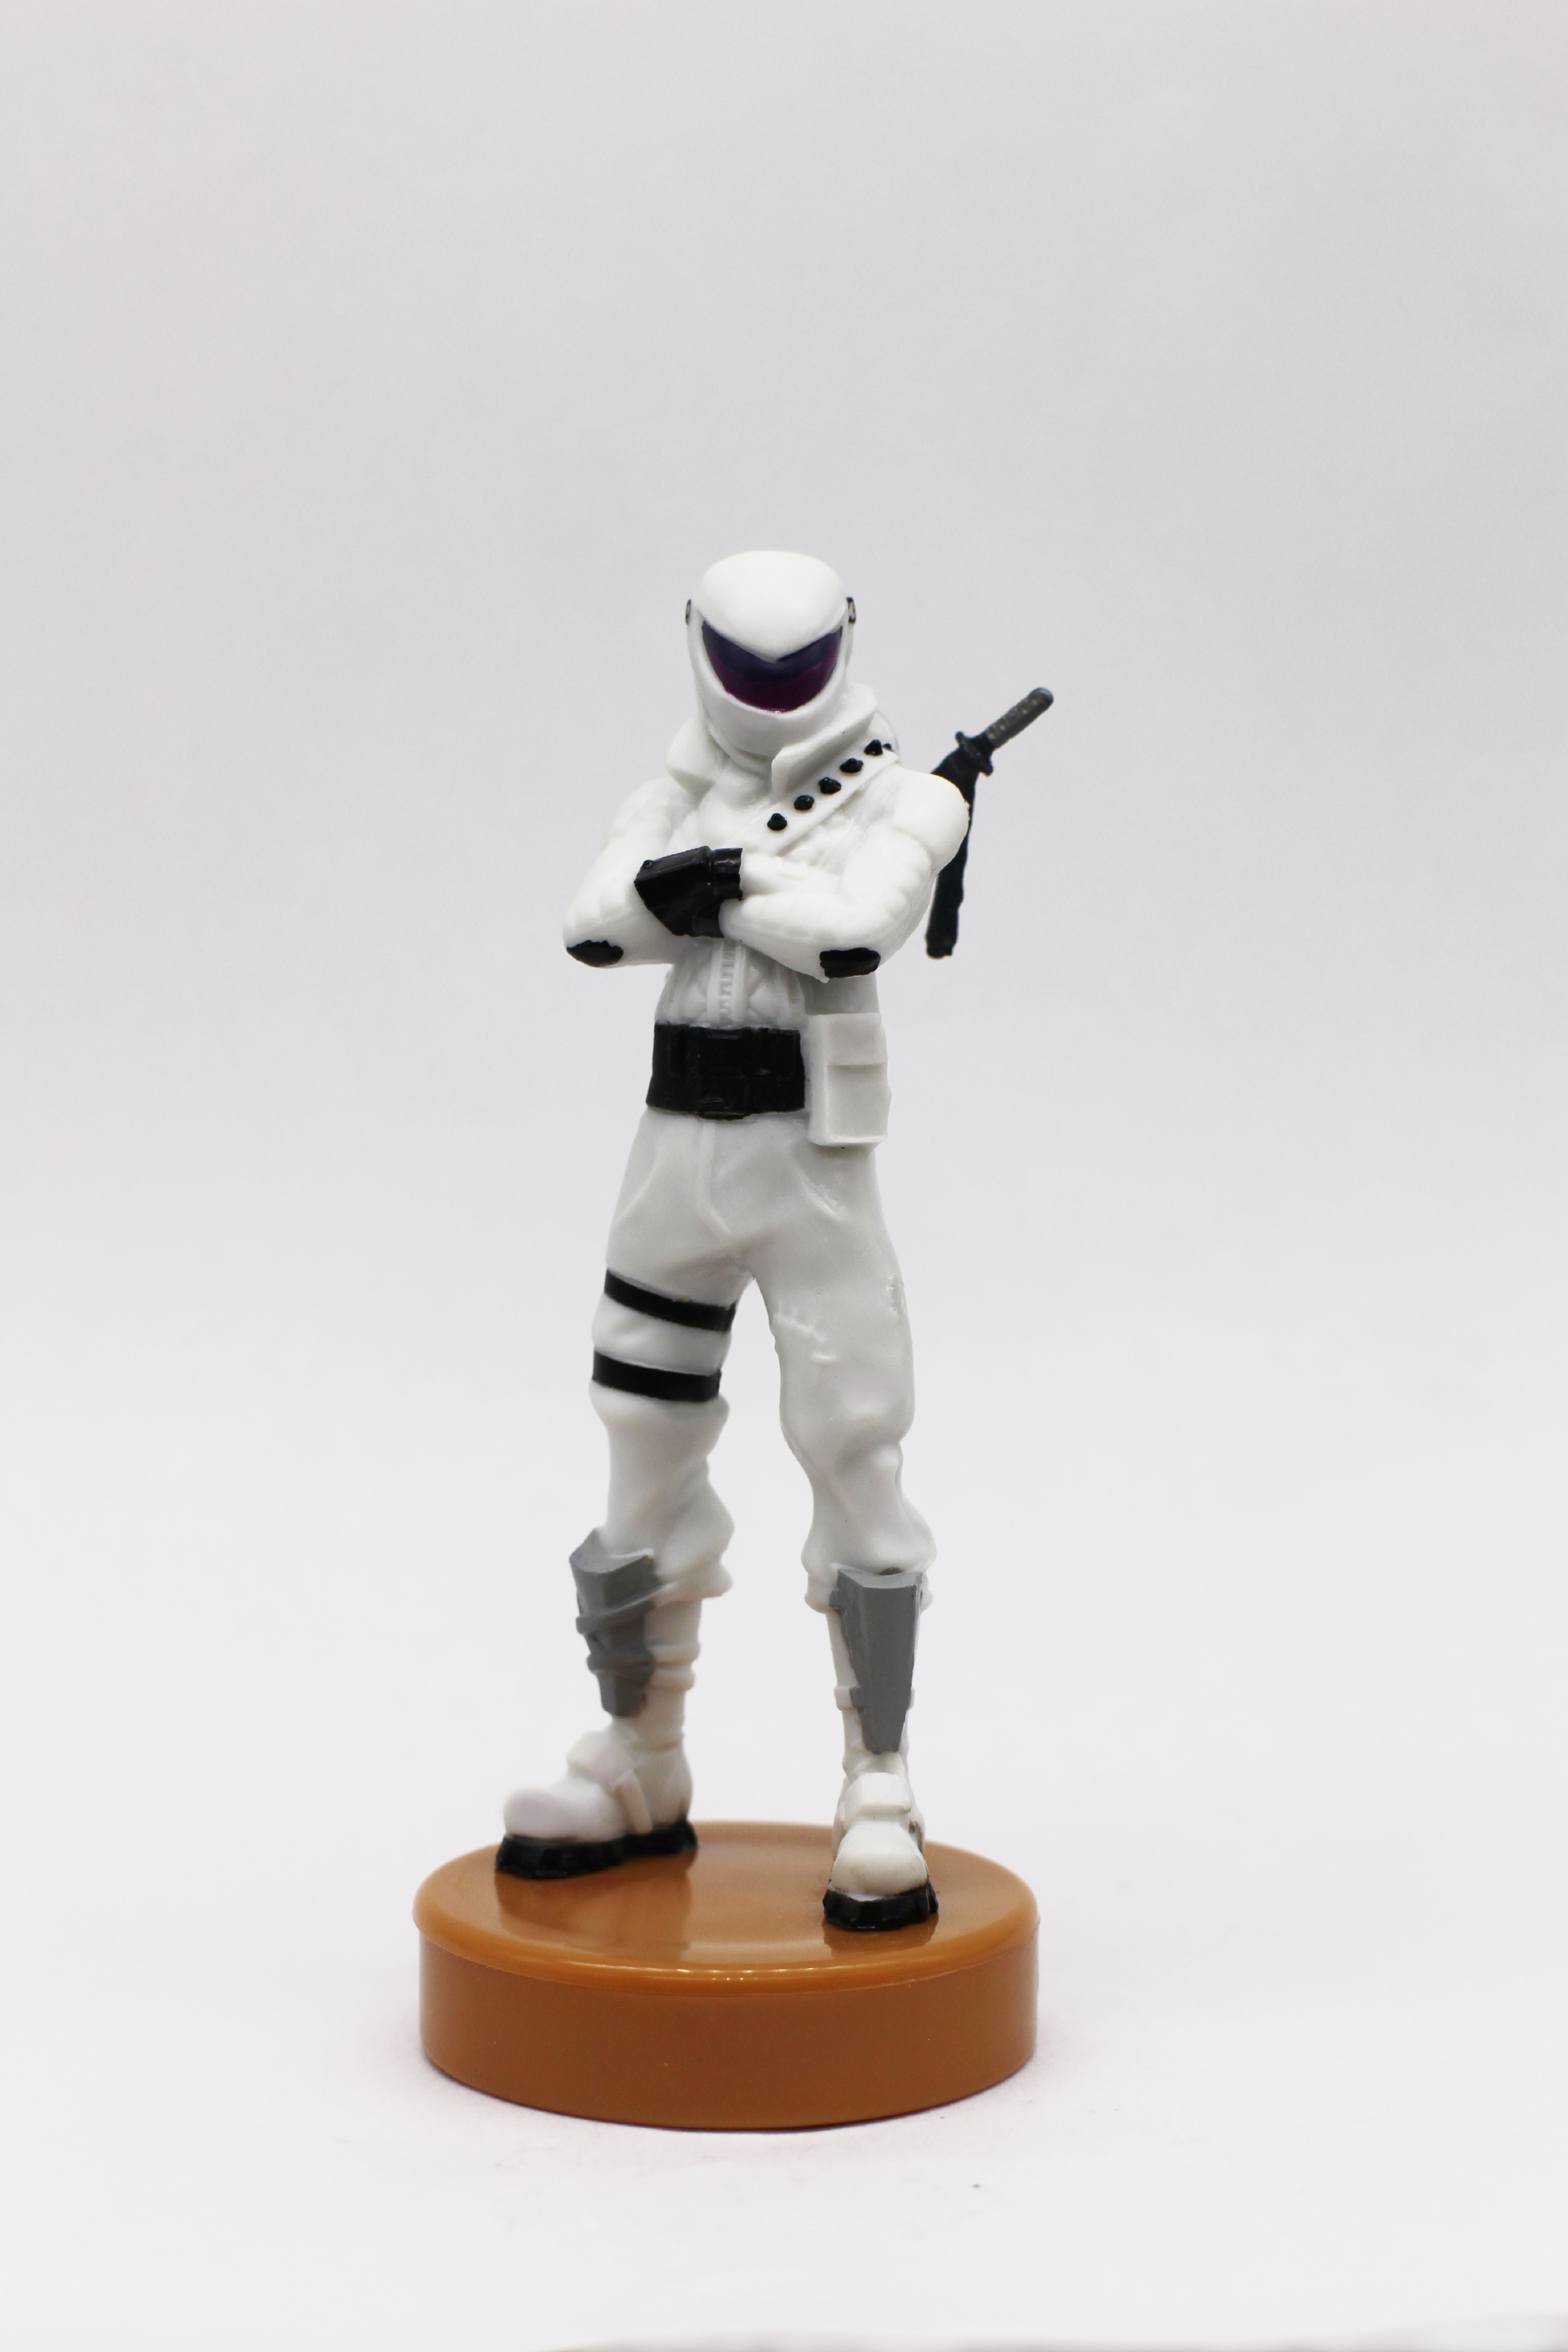 3D Fortnite stamper figure